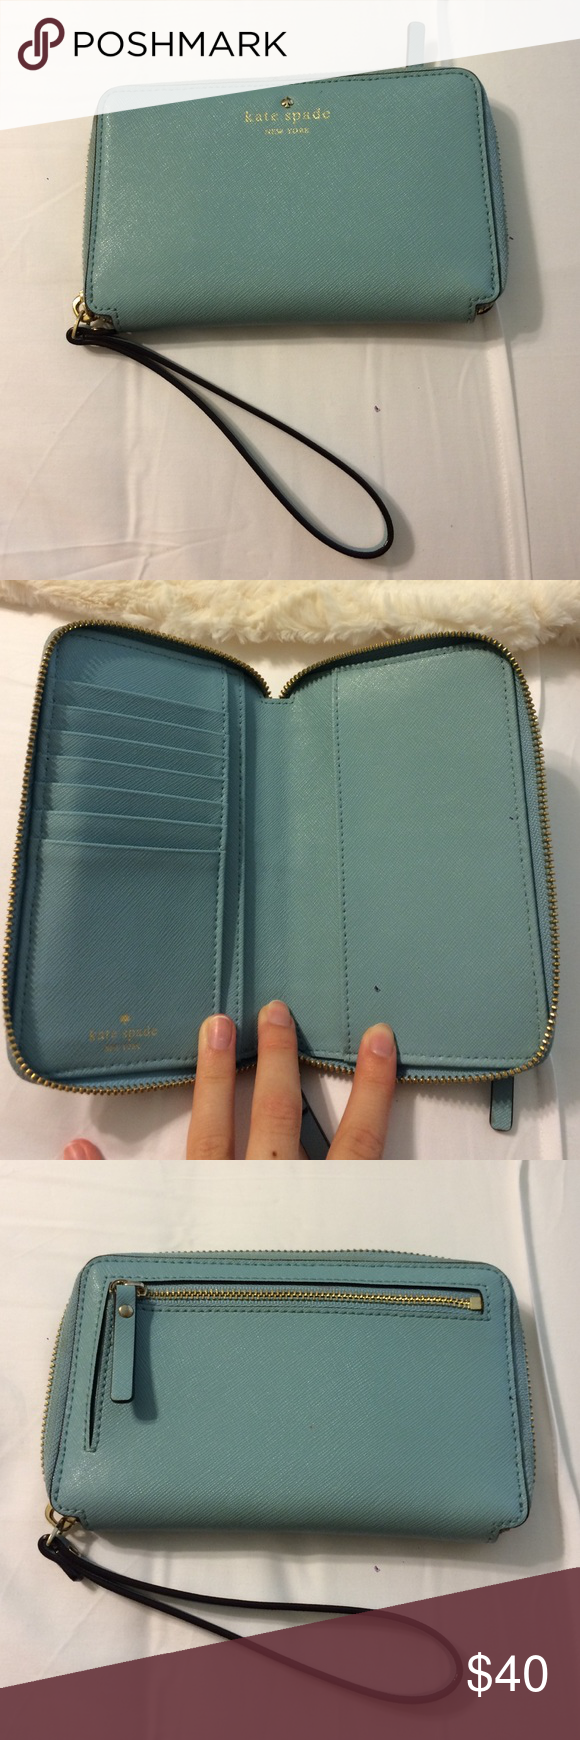 Kate Spade light blue wallet Late Spade light blue wallet with arm band. Lots of space. Has coin holder. Good condition. kate spade Bags Wallets